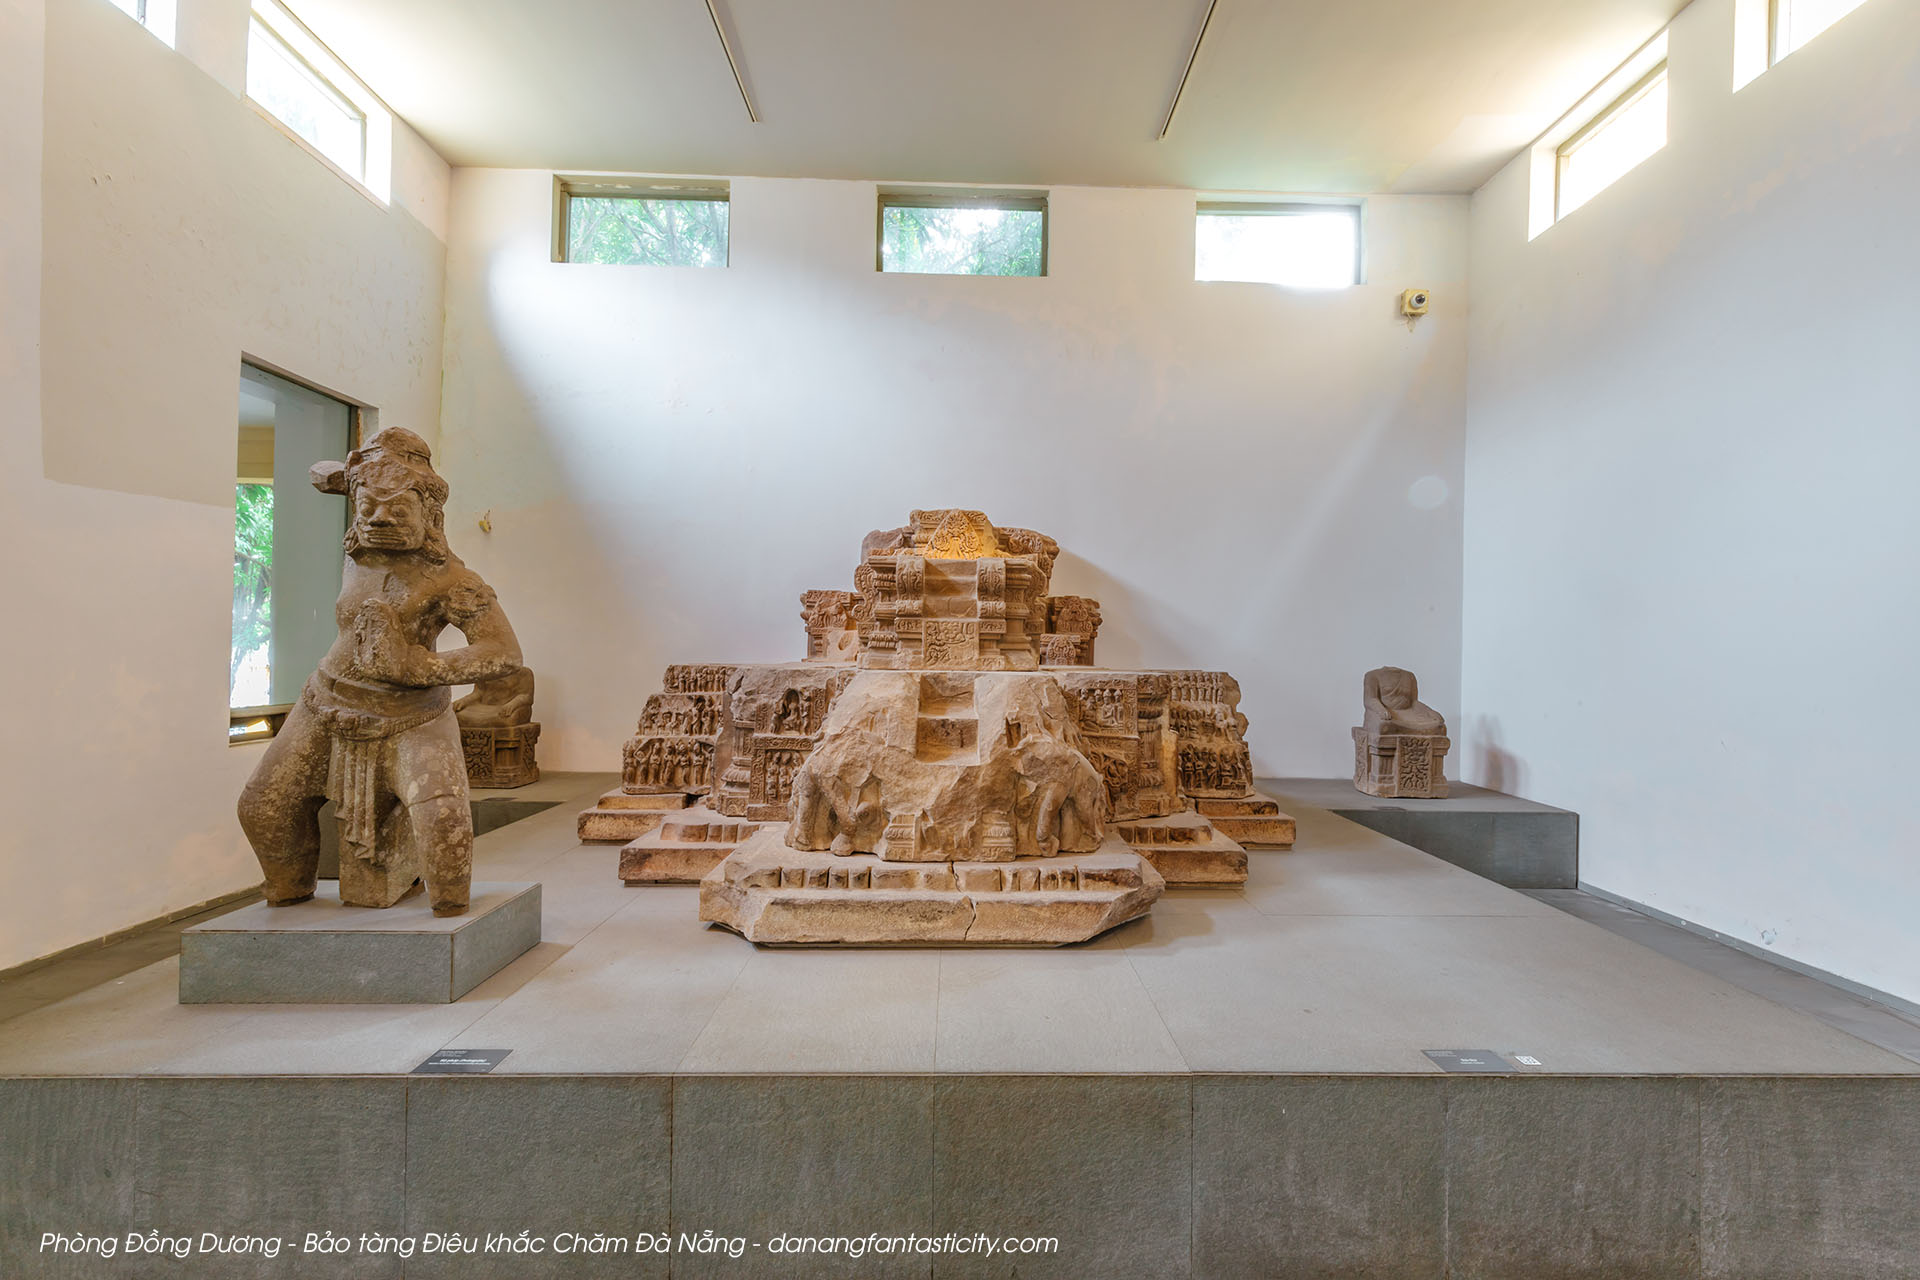 3d Scanning Trial Experience Explore The Timeless Values At Danang Musem Of Cham Sculpture 07